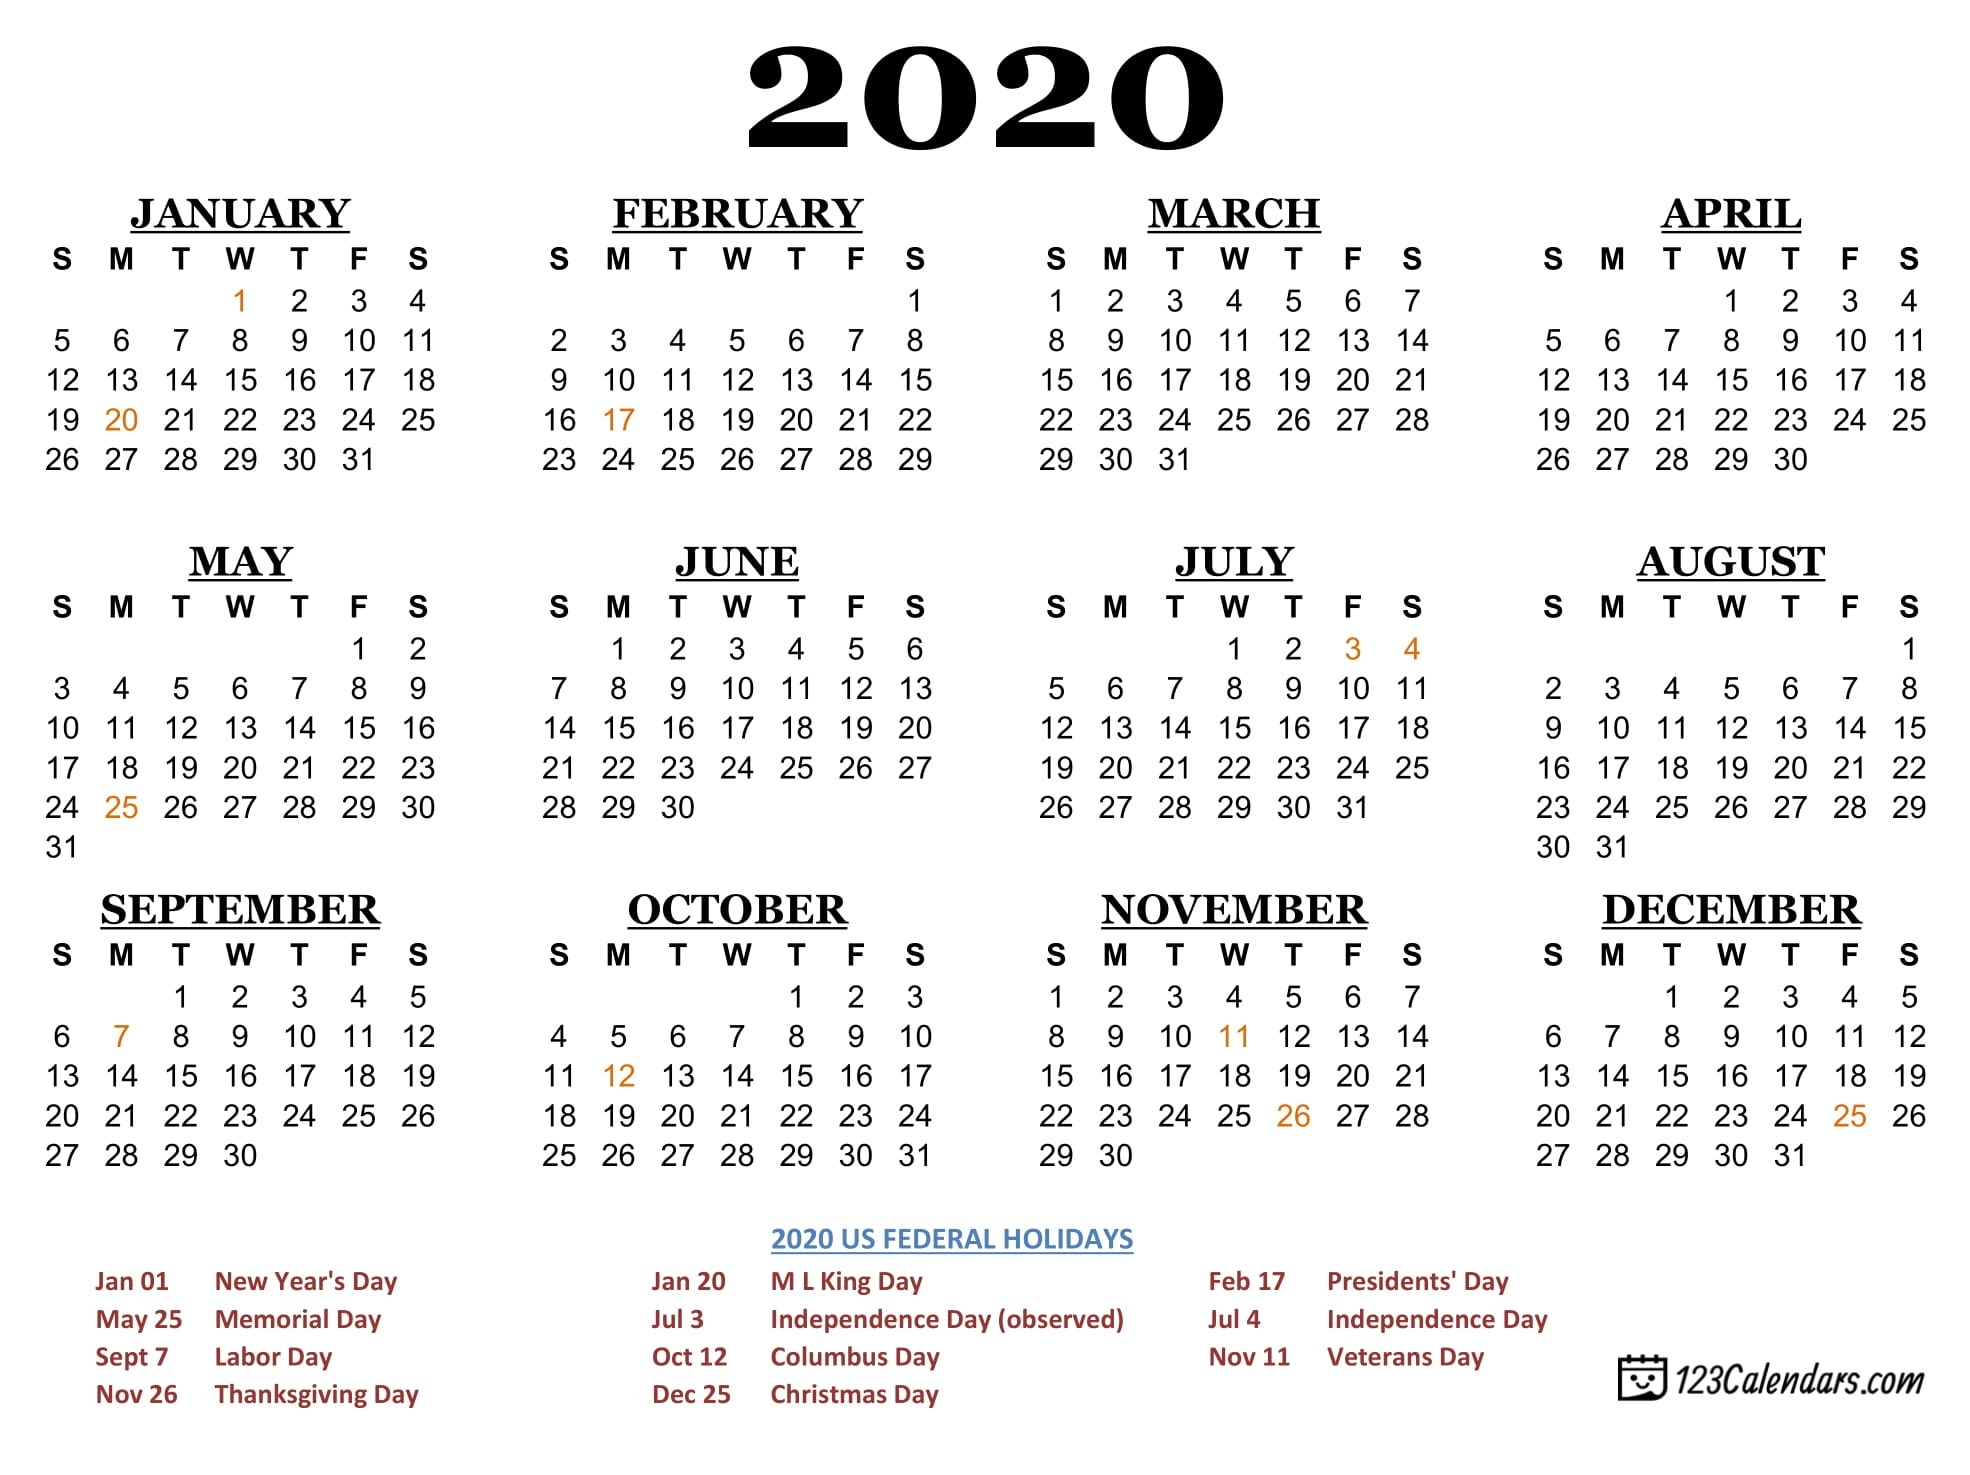 Free Printable Year 2020 Calendar | 123Calendars-2020 Calendar With Usa Legal Holidays